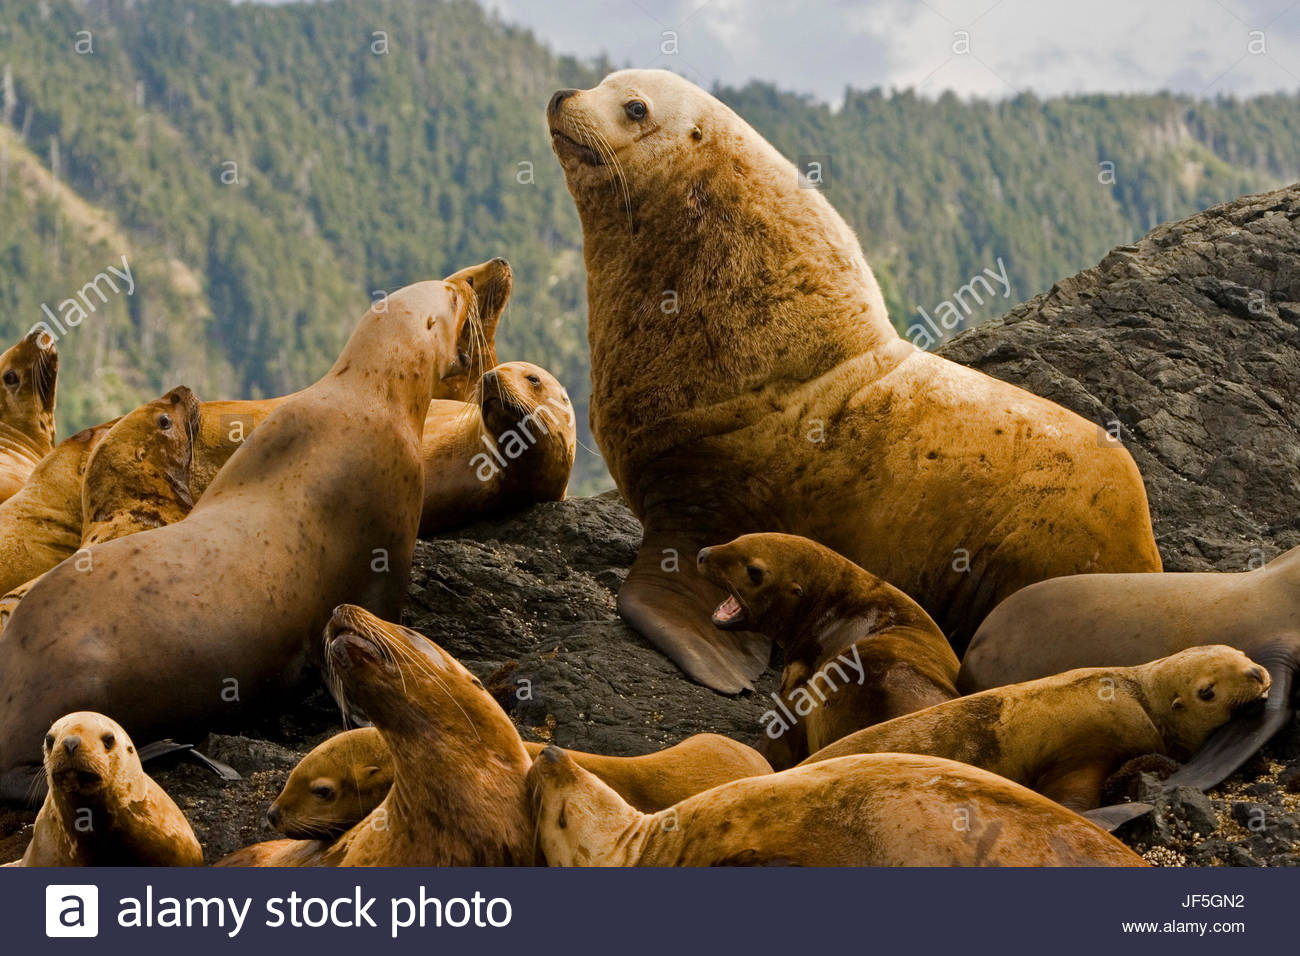 A dominant bull Steller sea lion, Eumetopias jubatus, on rock with females and juveniles. - Stock Image